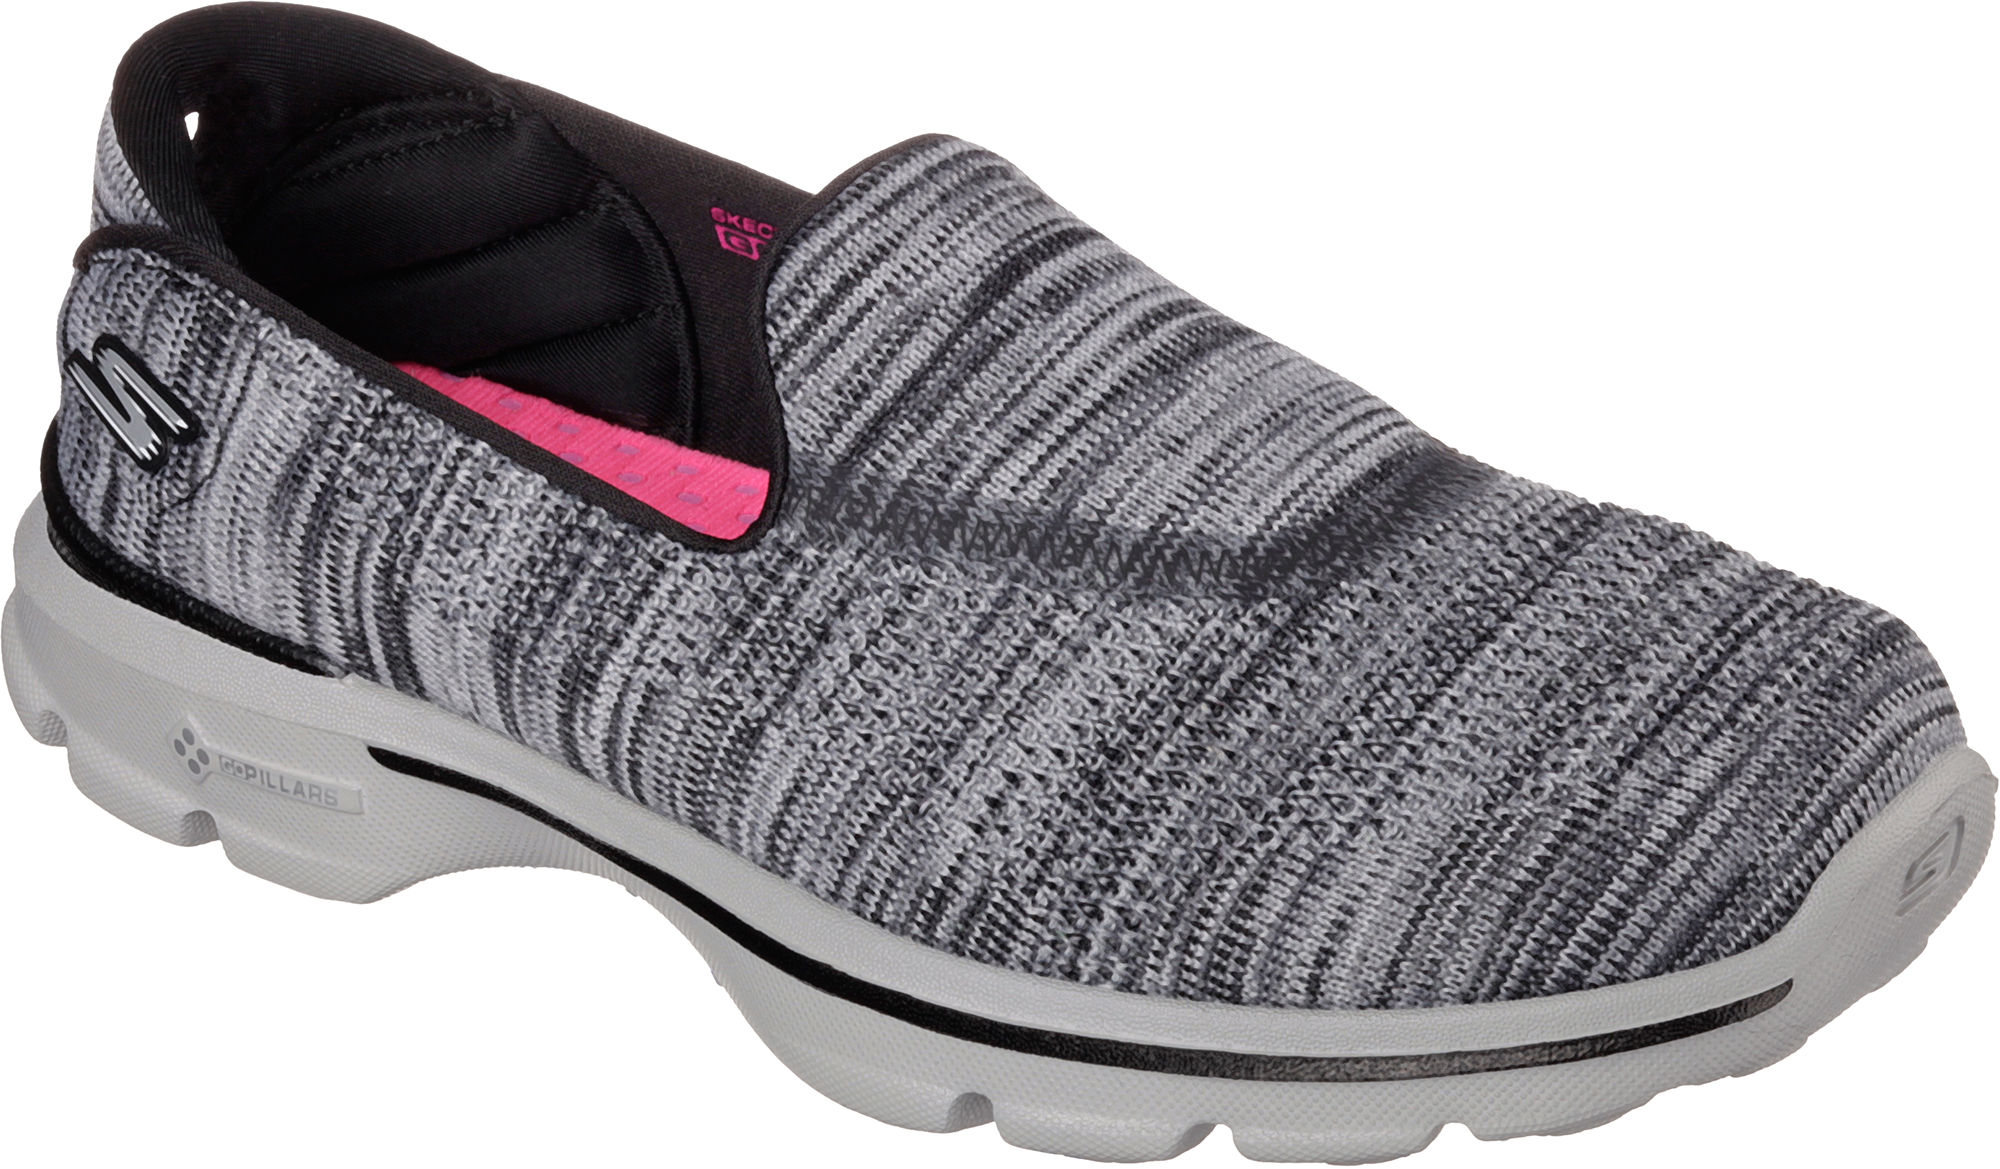 skechers womens gowalk 3 fit knit walking shoes ebay